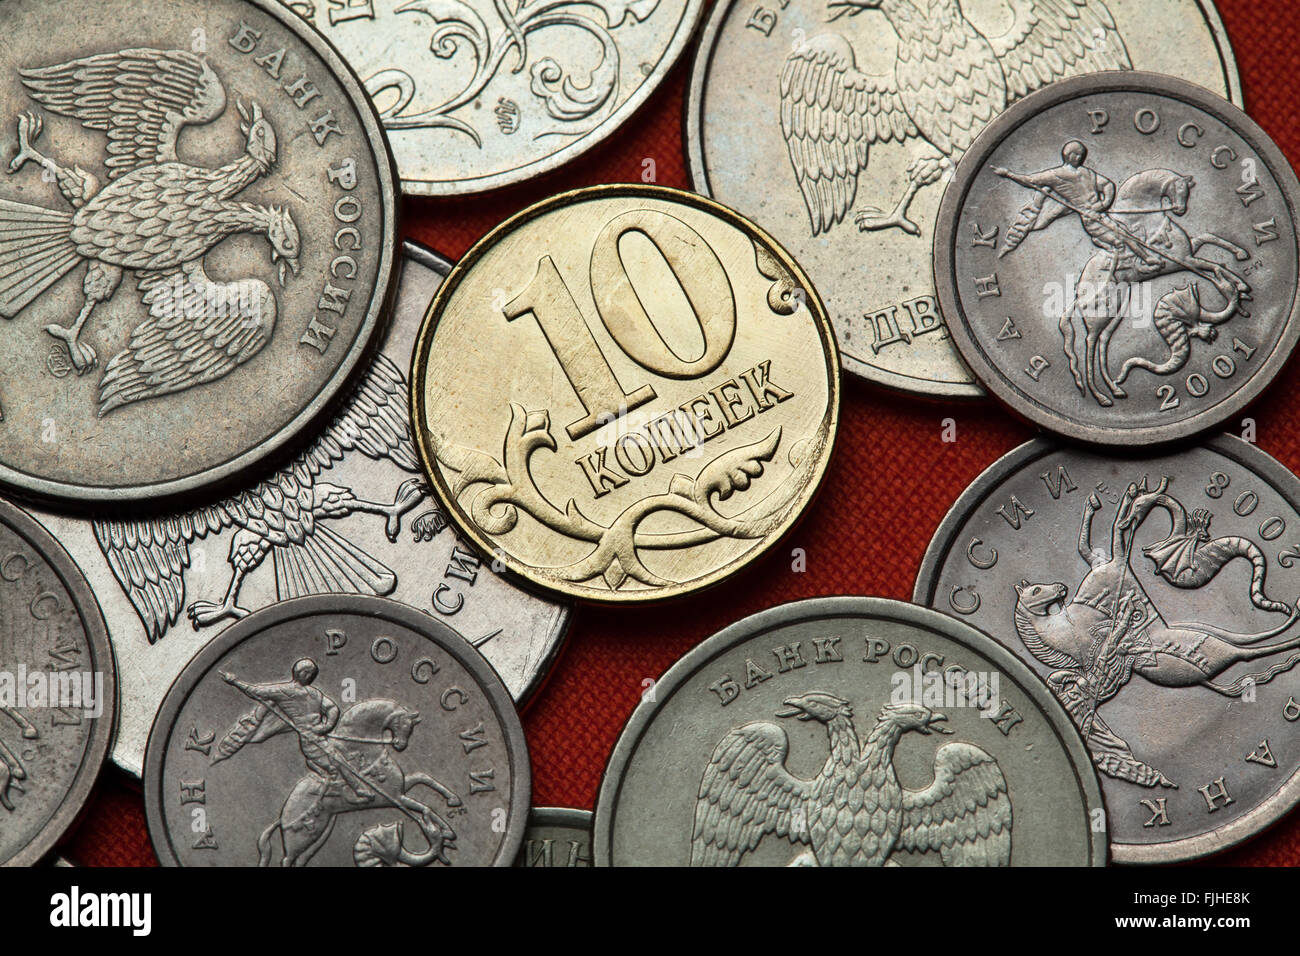 Coins of Russia. Russian 10 kopek coin. - Stock Image